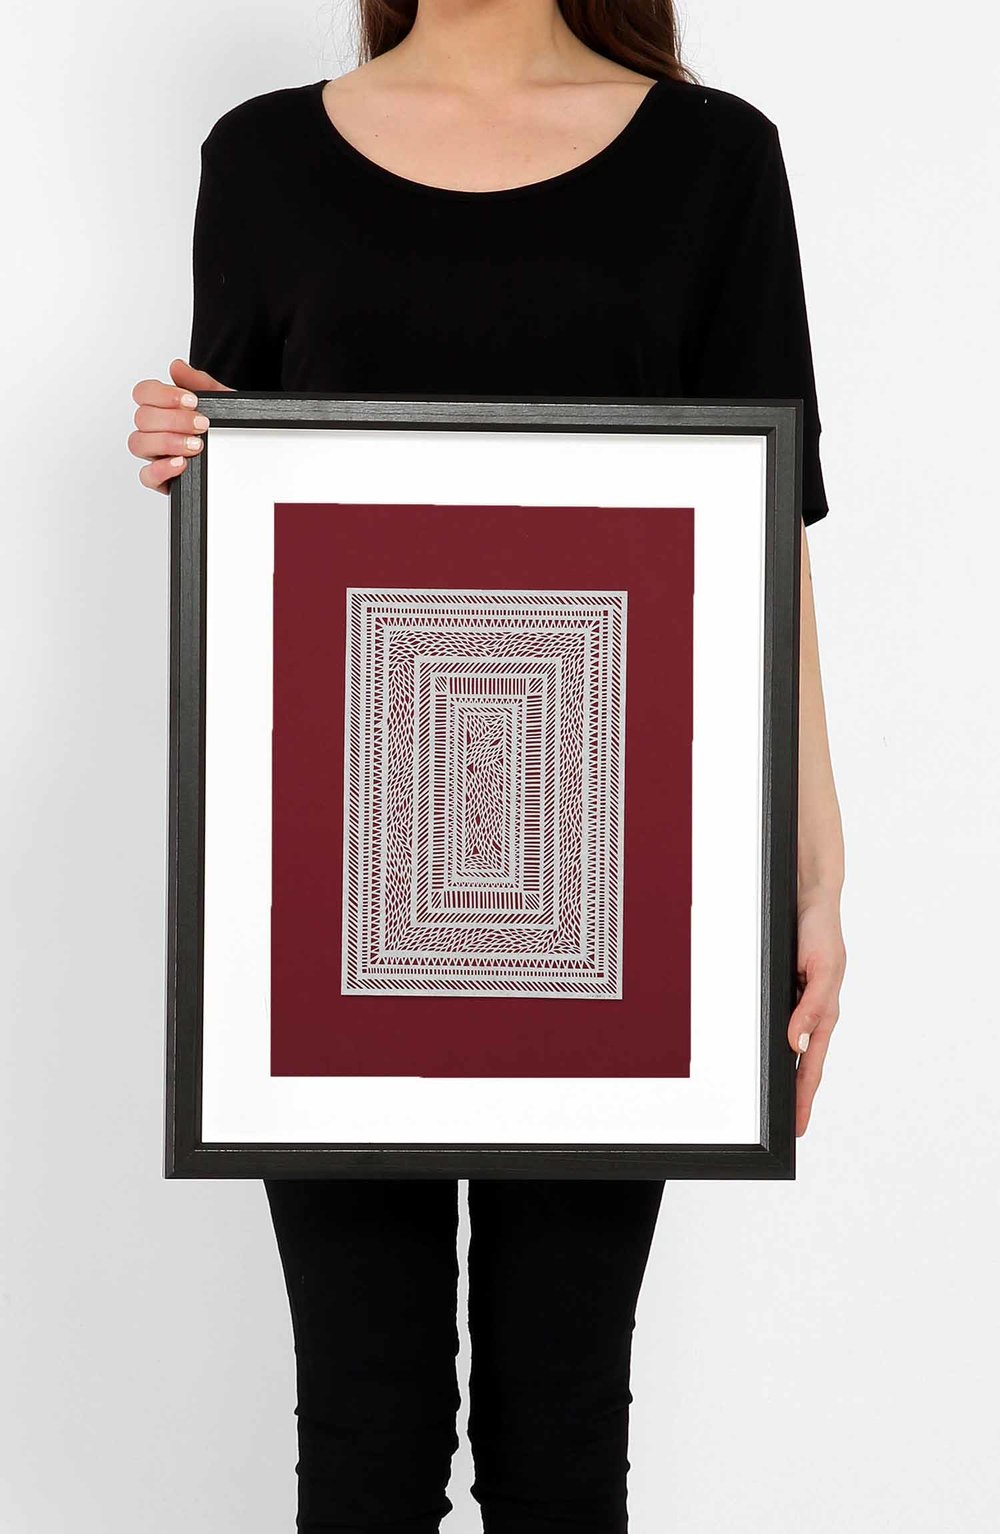 Untitled White Geometrical Medium on Red_Framed.jpg